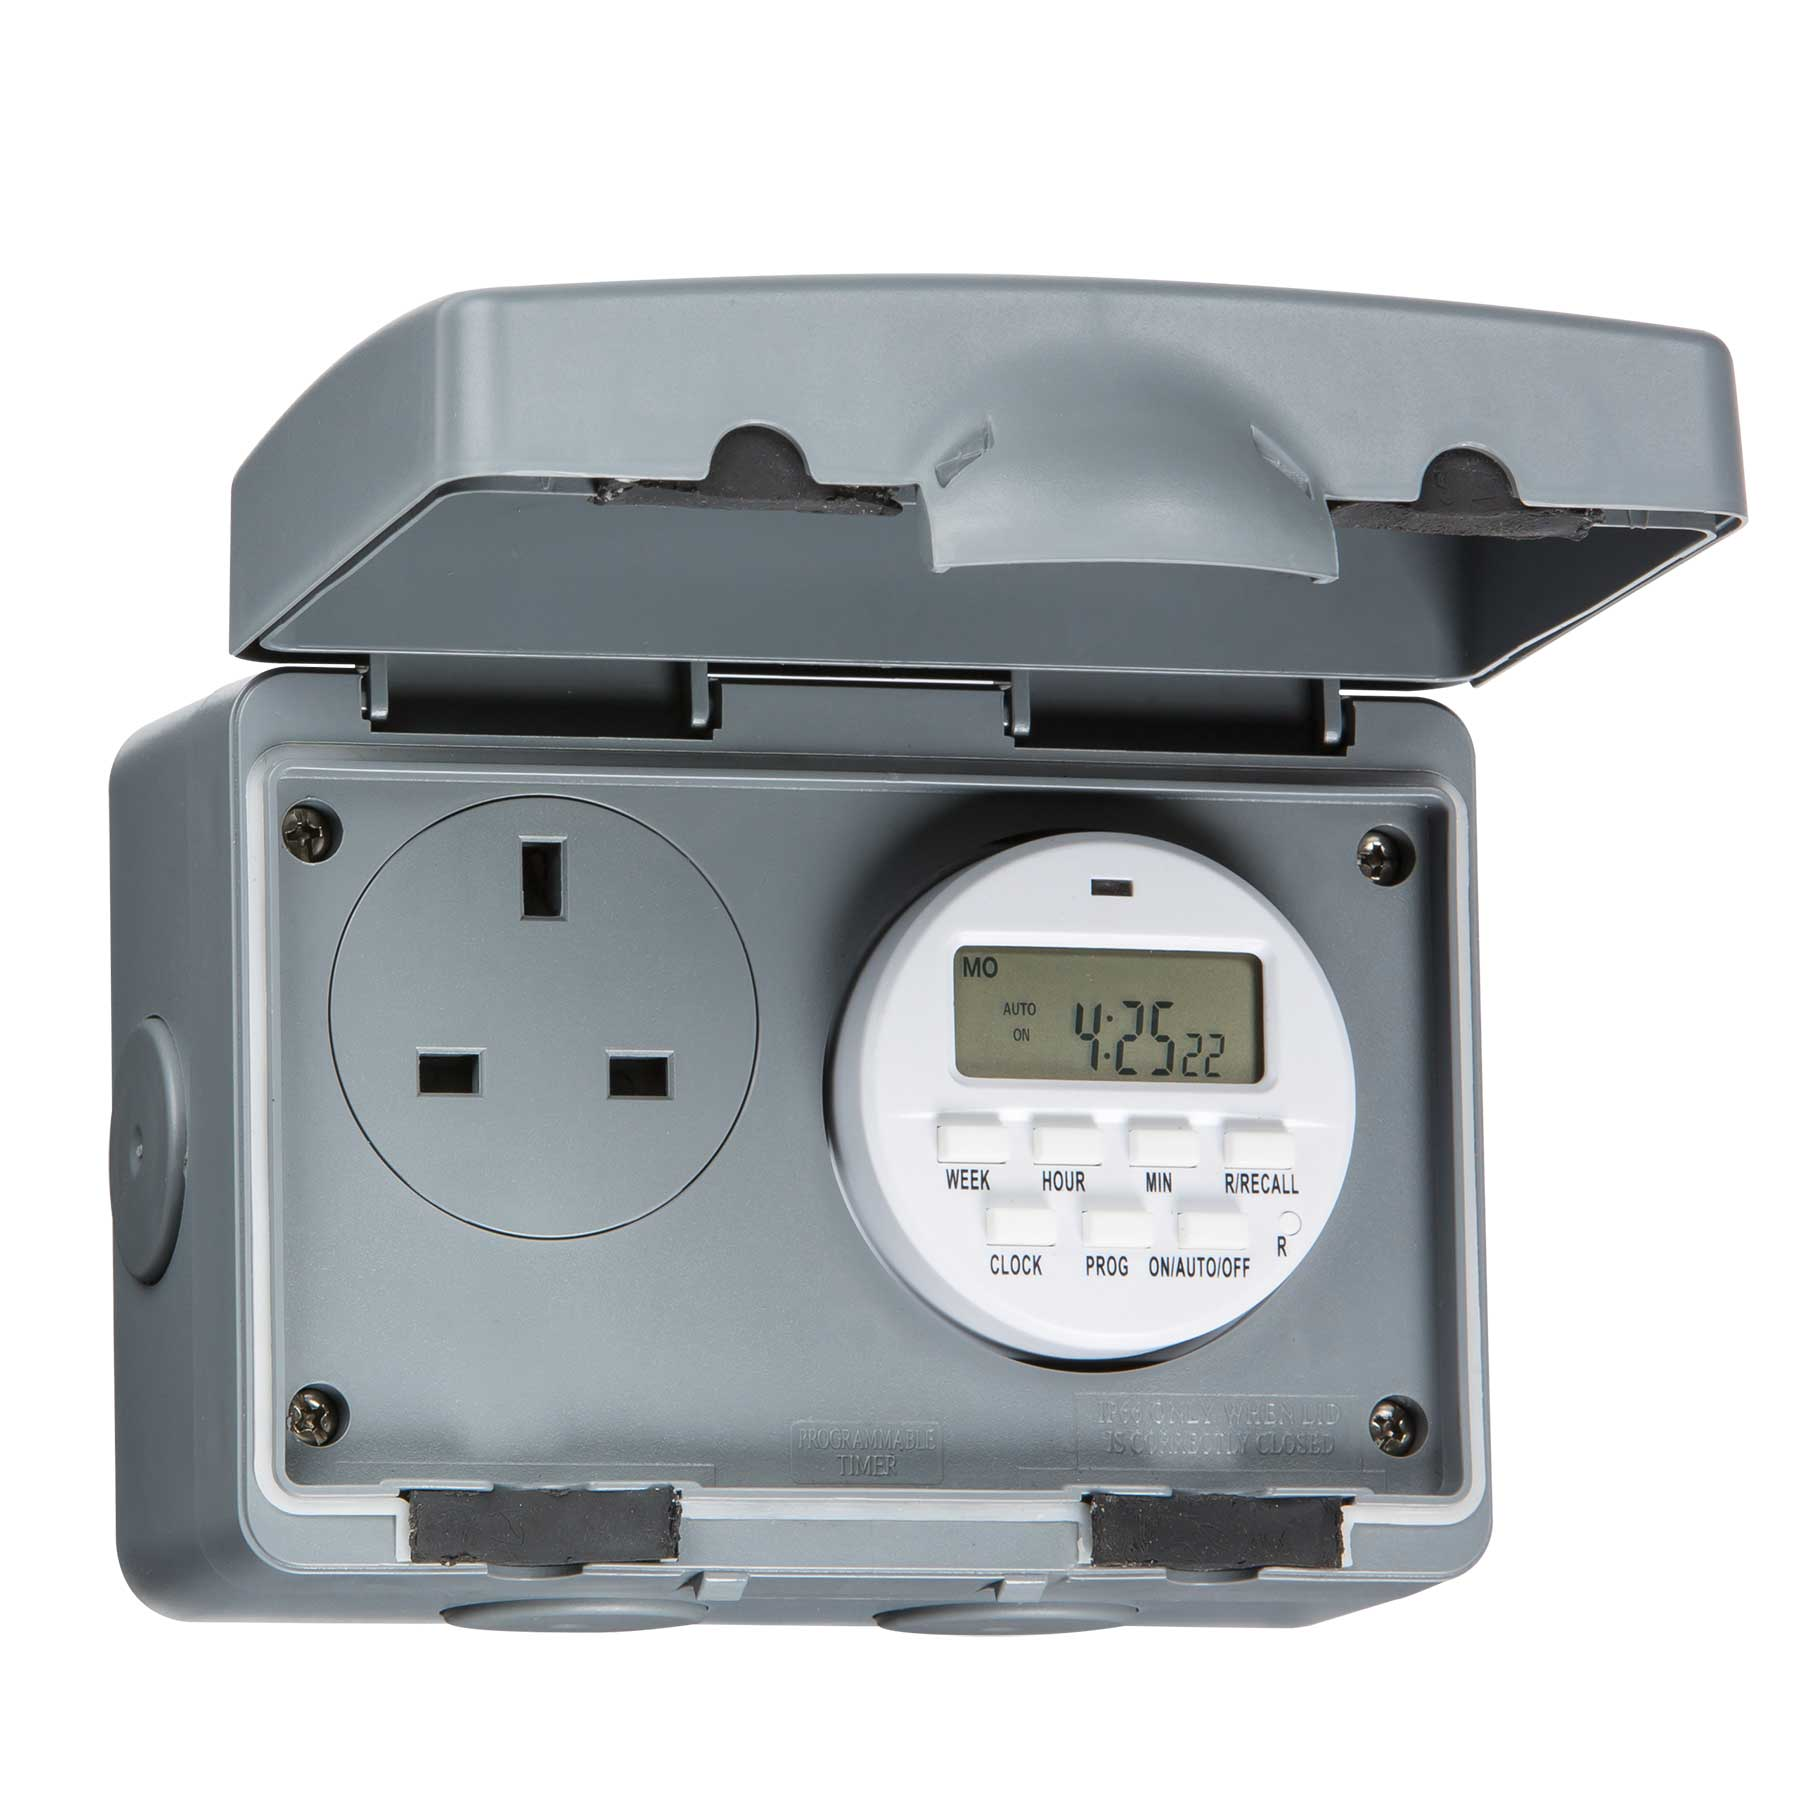 Knightsbridge Ip7000d Ip66 13a Outdoor Socket With 7 Day Digital Wiring A Spur Timer